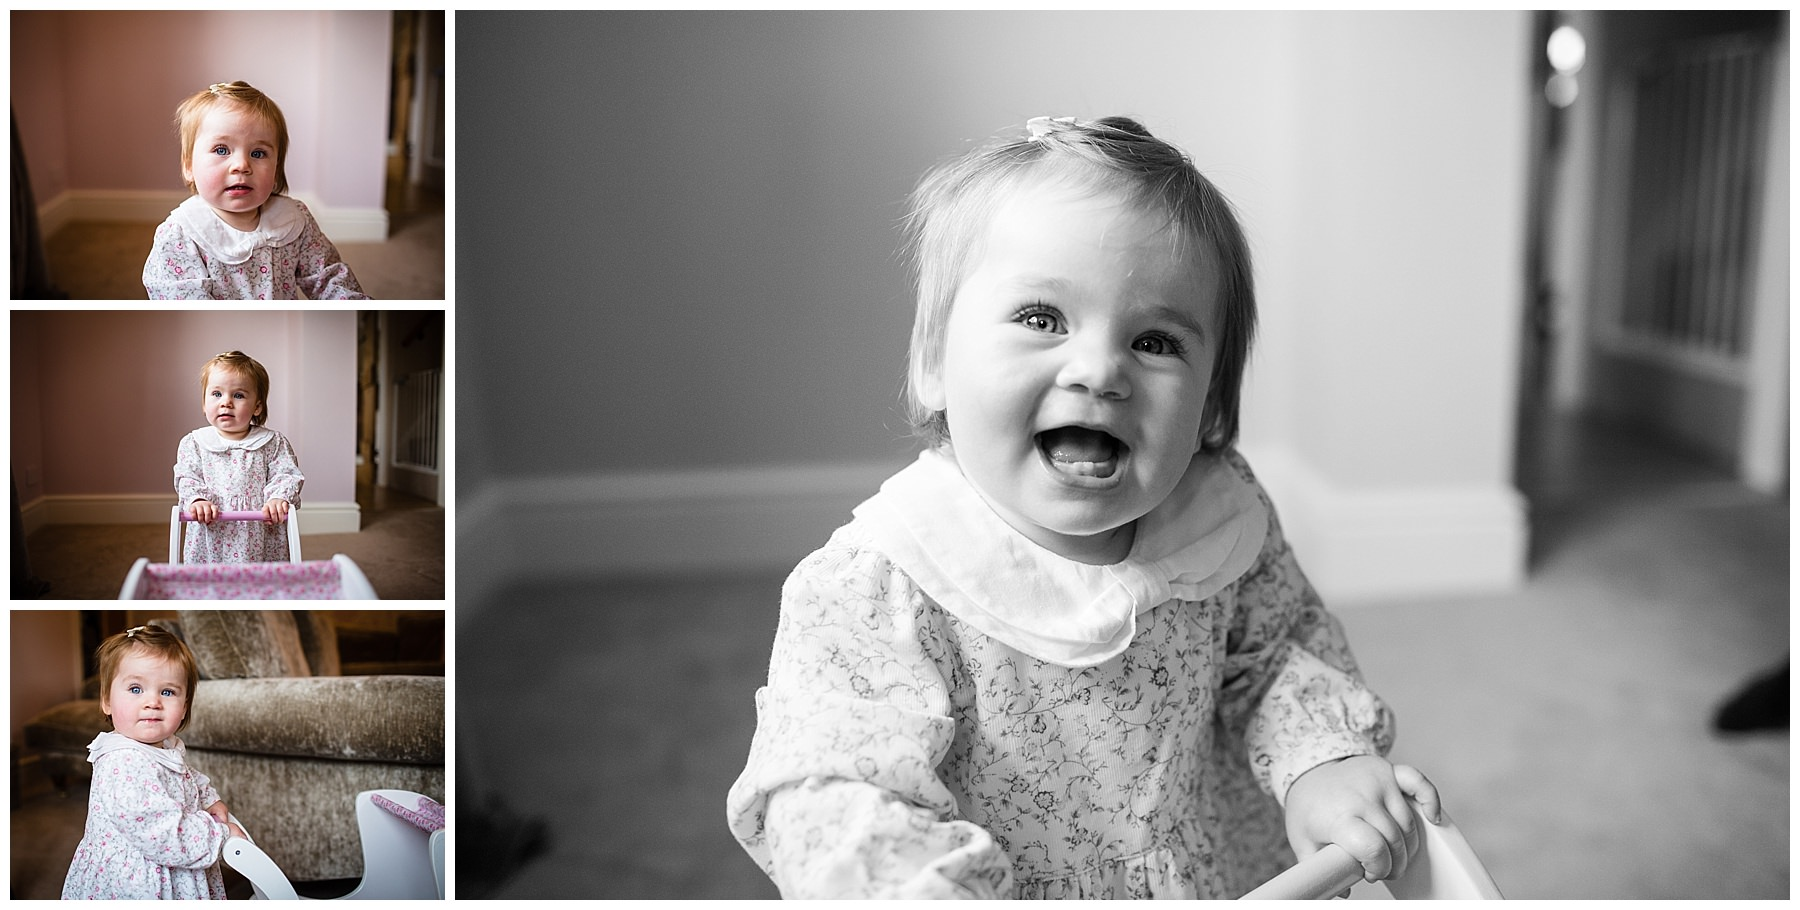 black and white photo of one year old girl holding a pram smiling